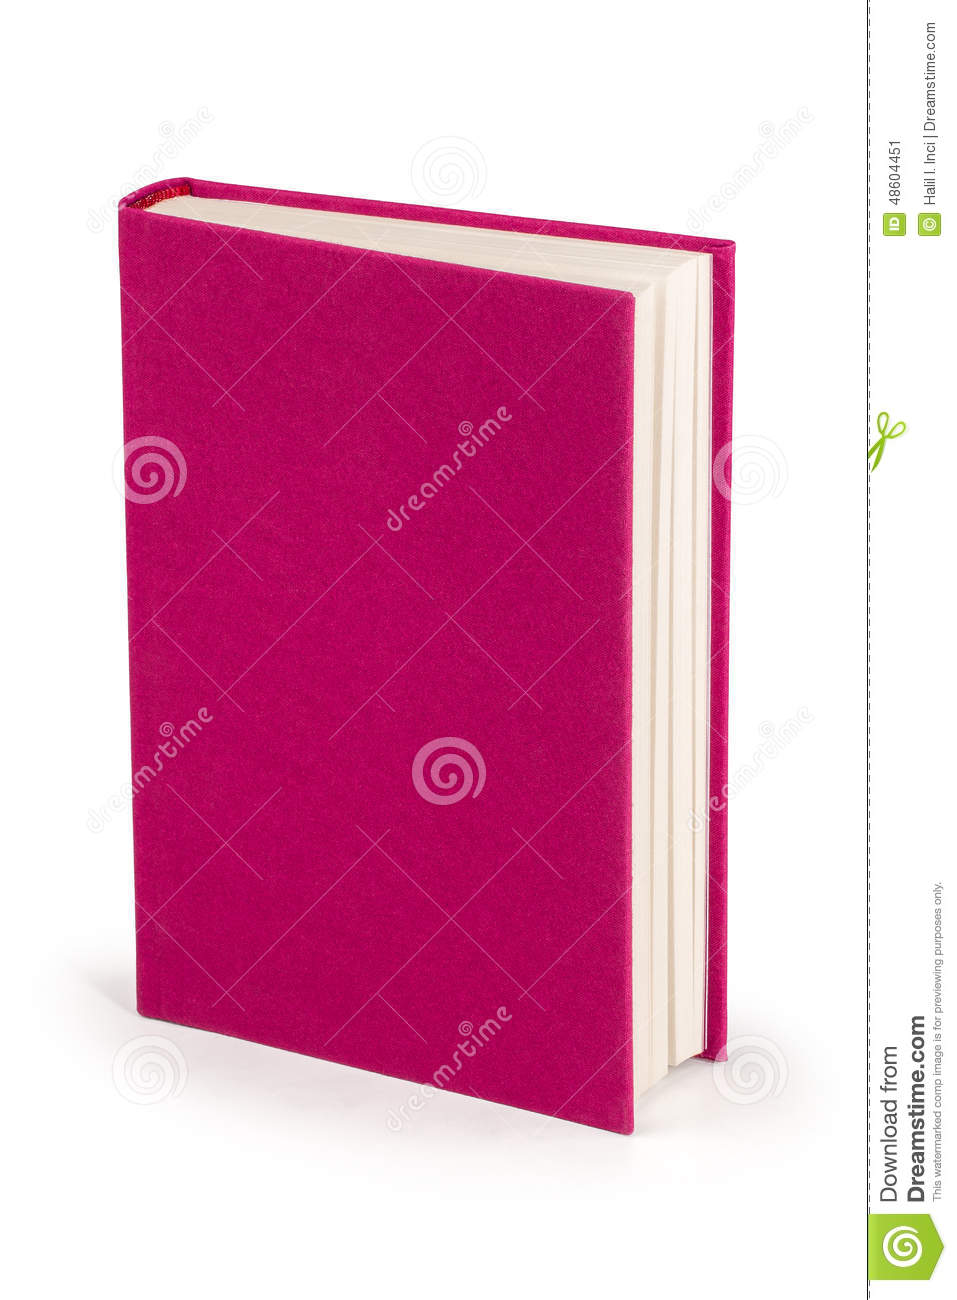 Hardcover Book Texture : Purple book binding stock photo cartoondealer